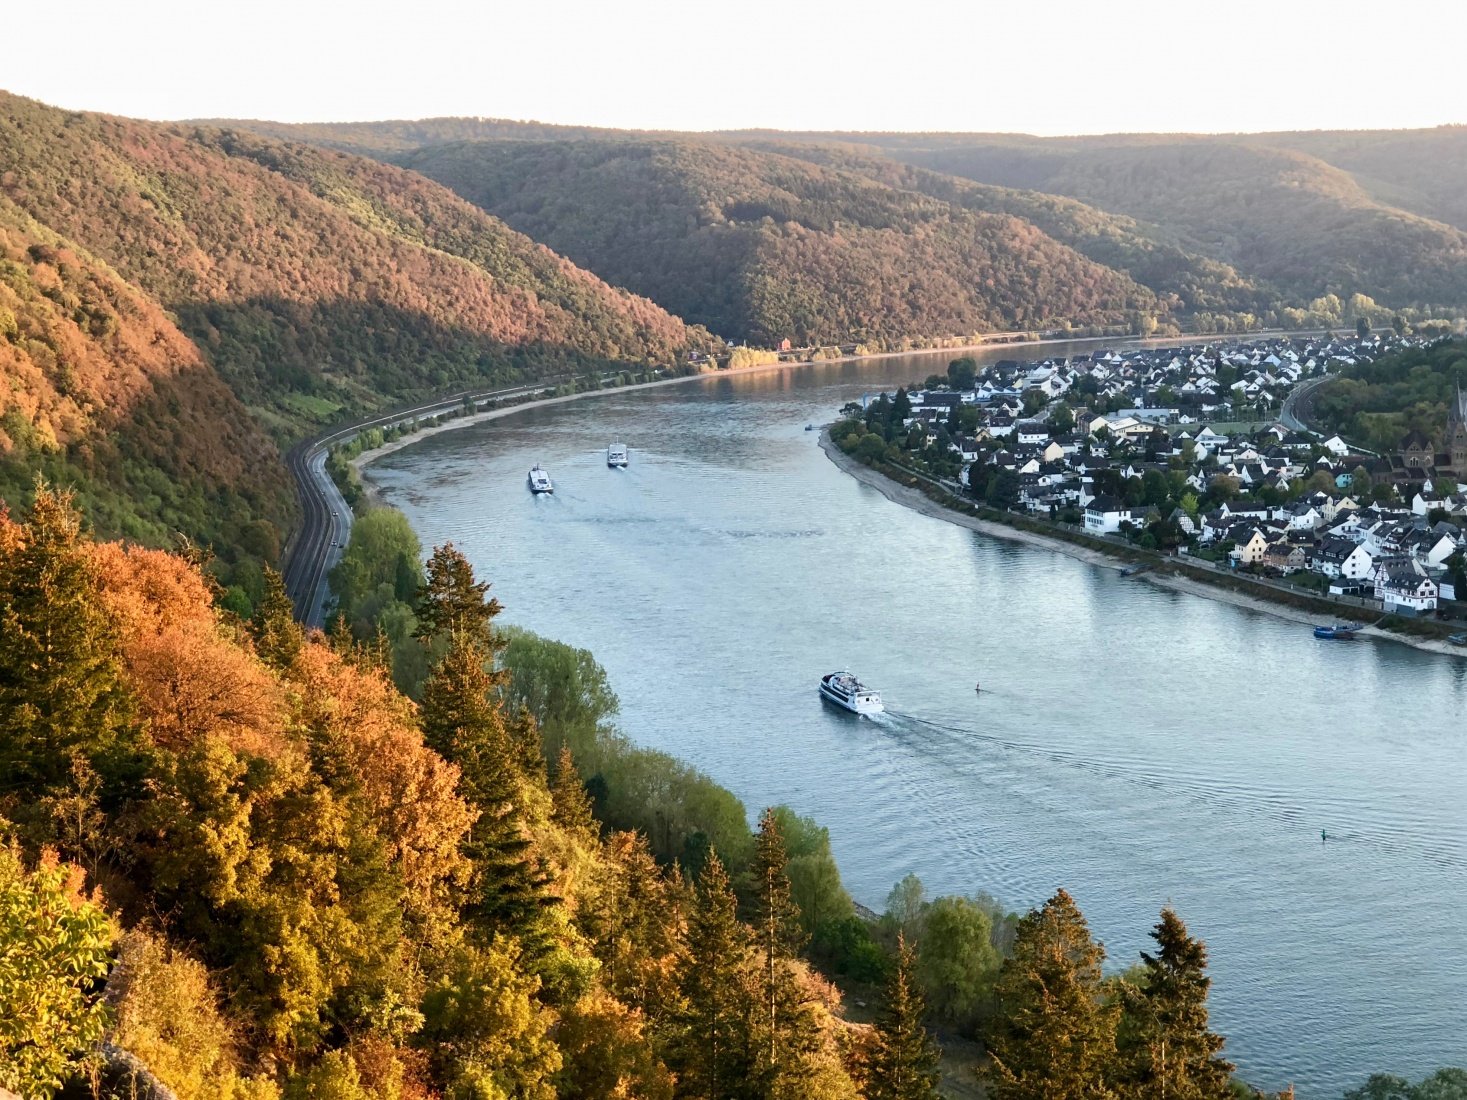 The view over the Rhein from the medieval Marksburg Castle, not far from Koblenz, Germany.